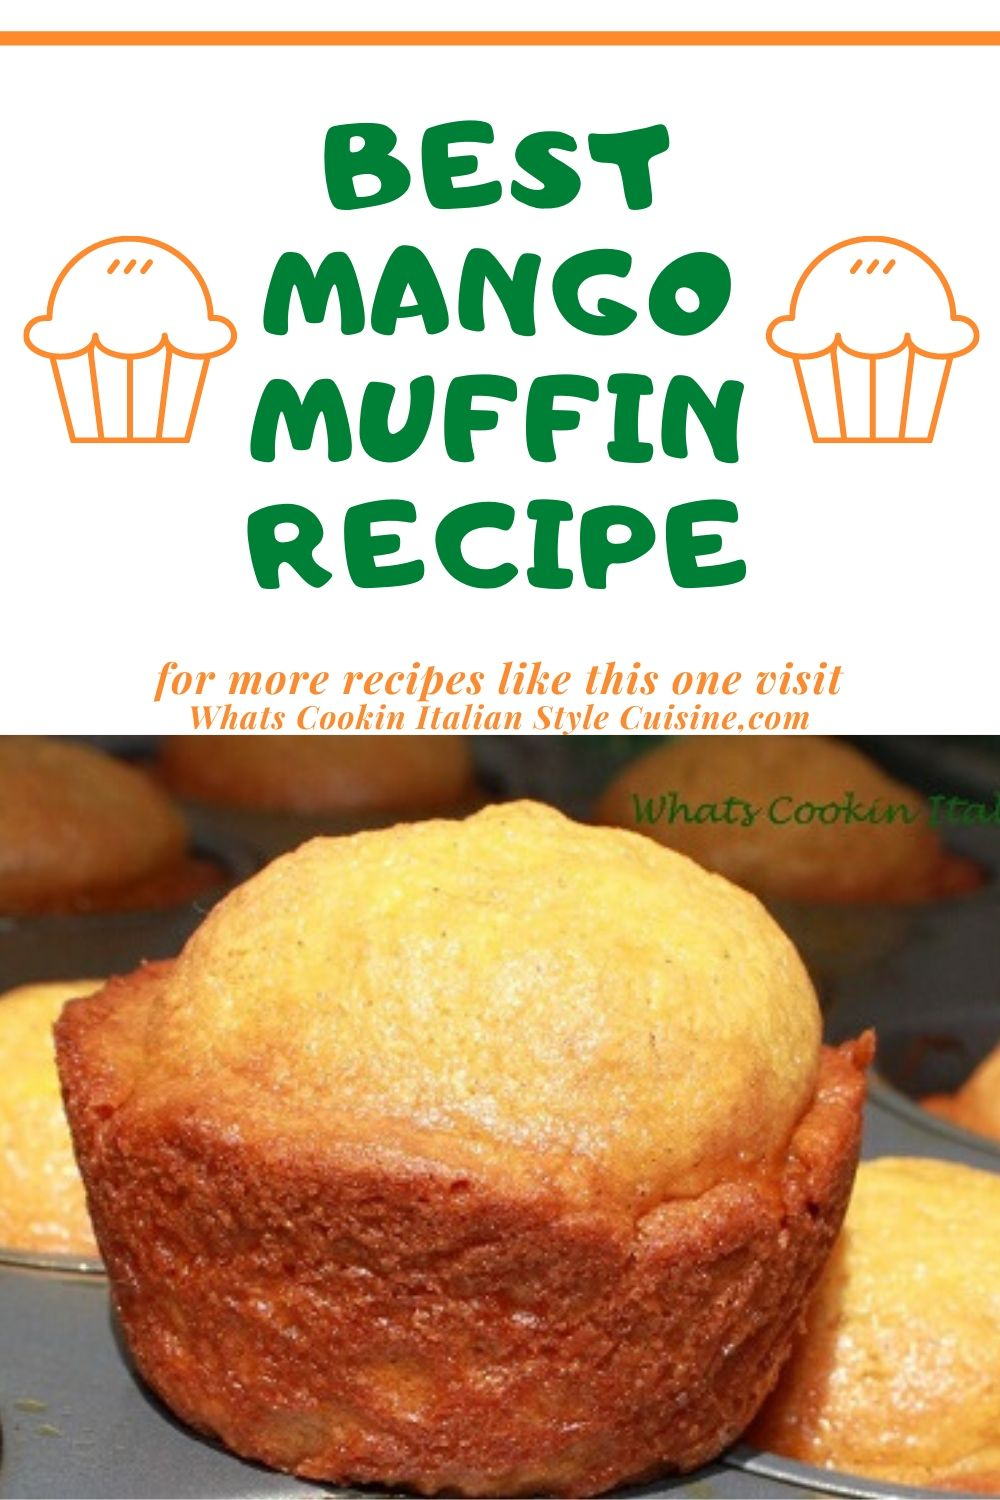 These are muffins baked with a tropical mango chopped fruit inside. The muffins are in cupcake tins cooling